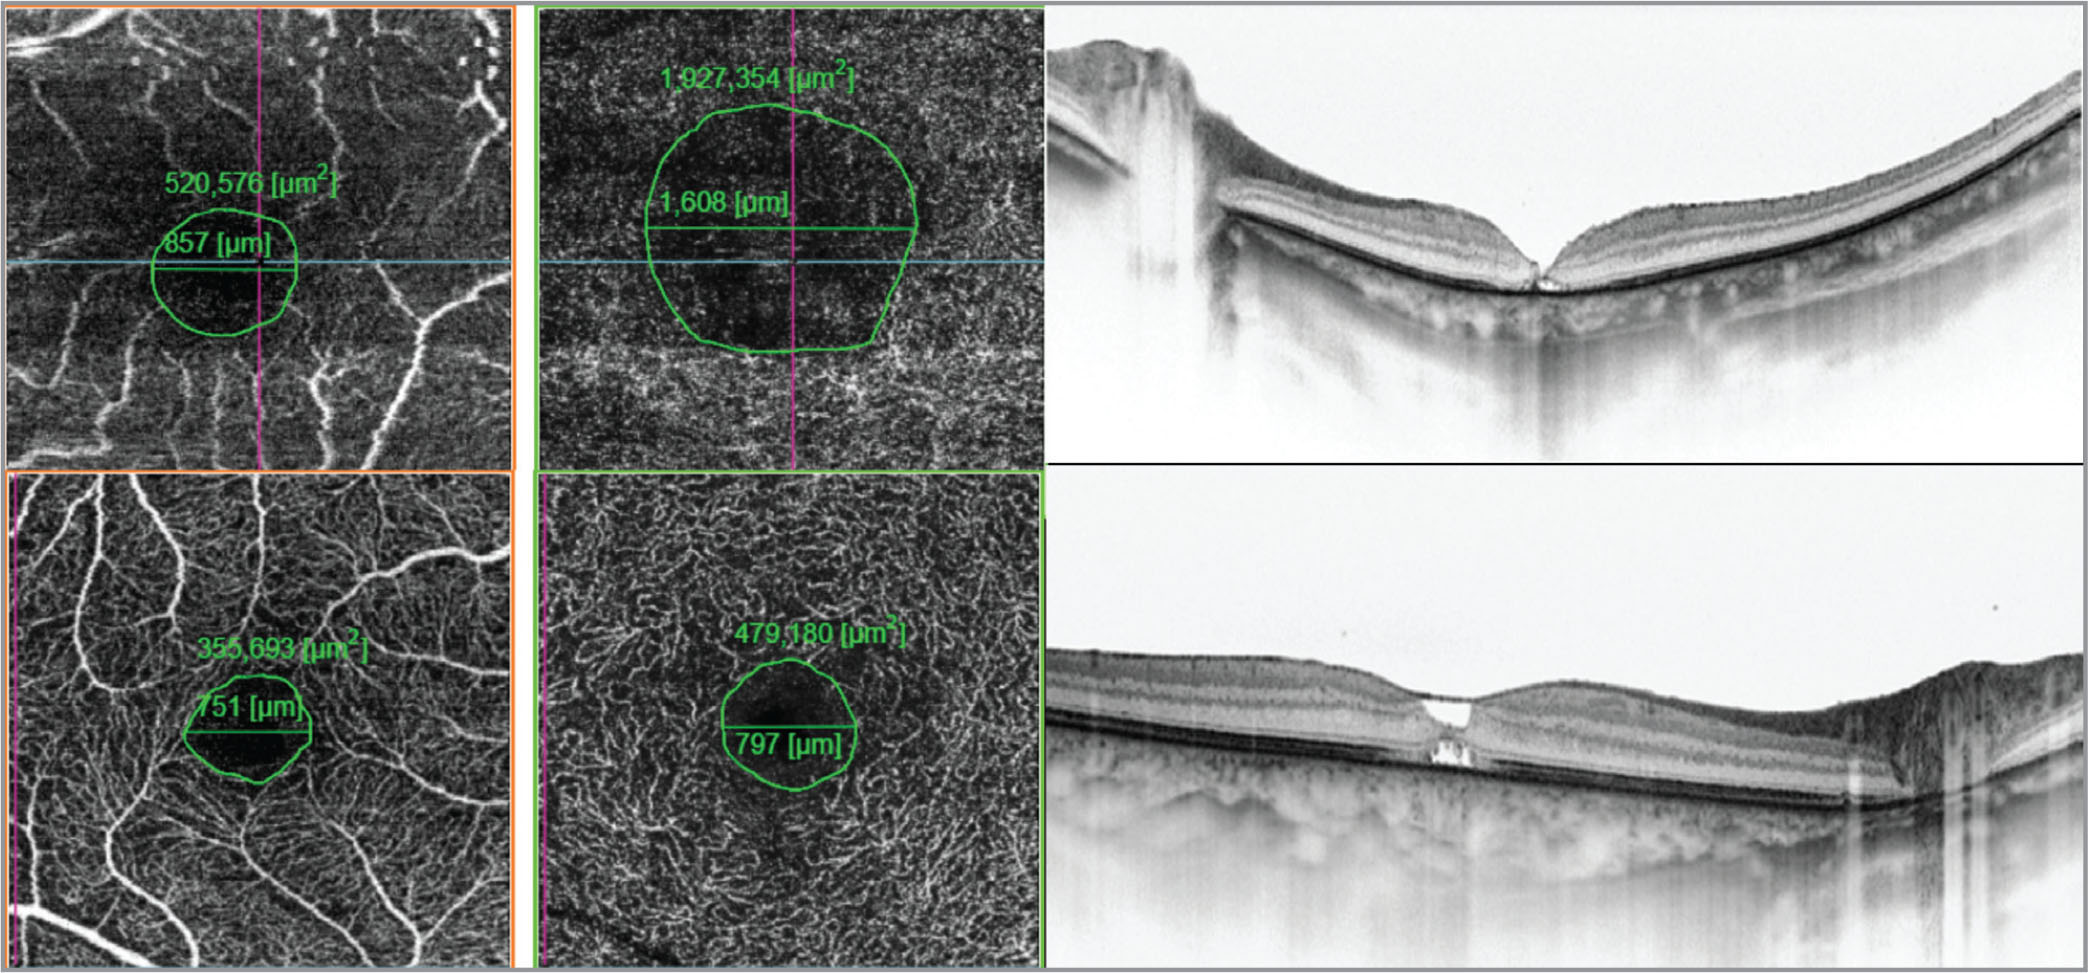 Increased size of the foveal avascular zone (FAZ) at the level of the deep retina vessel plexus corresponds with central retinal thickness 1 month after surgery. The green circle represents the area of the FAZ. Upper from left: Swept-source optical coherence tomography angiography (SS-OCTA) at the level of the superficial retinal vessels, SS-OCTA at the level of deep retinal vessels, and SS-OCT. Lower from left: SS-OCTA) at the level of the superficial retinal vessels, SS-OCTA at the level of deep retinal vessels, and SS-OCT.